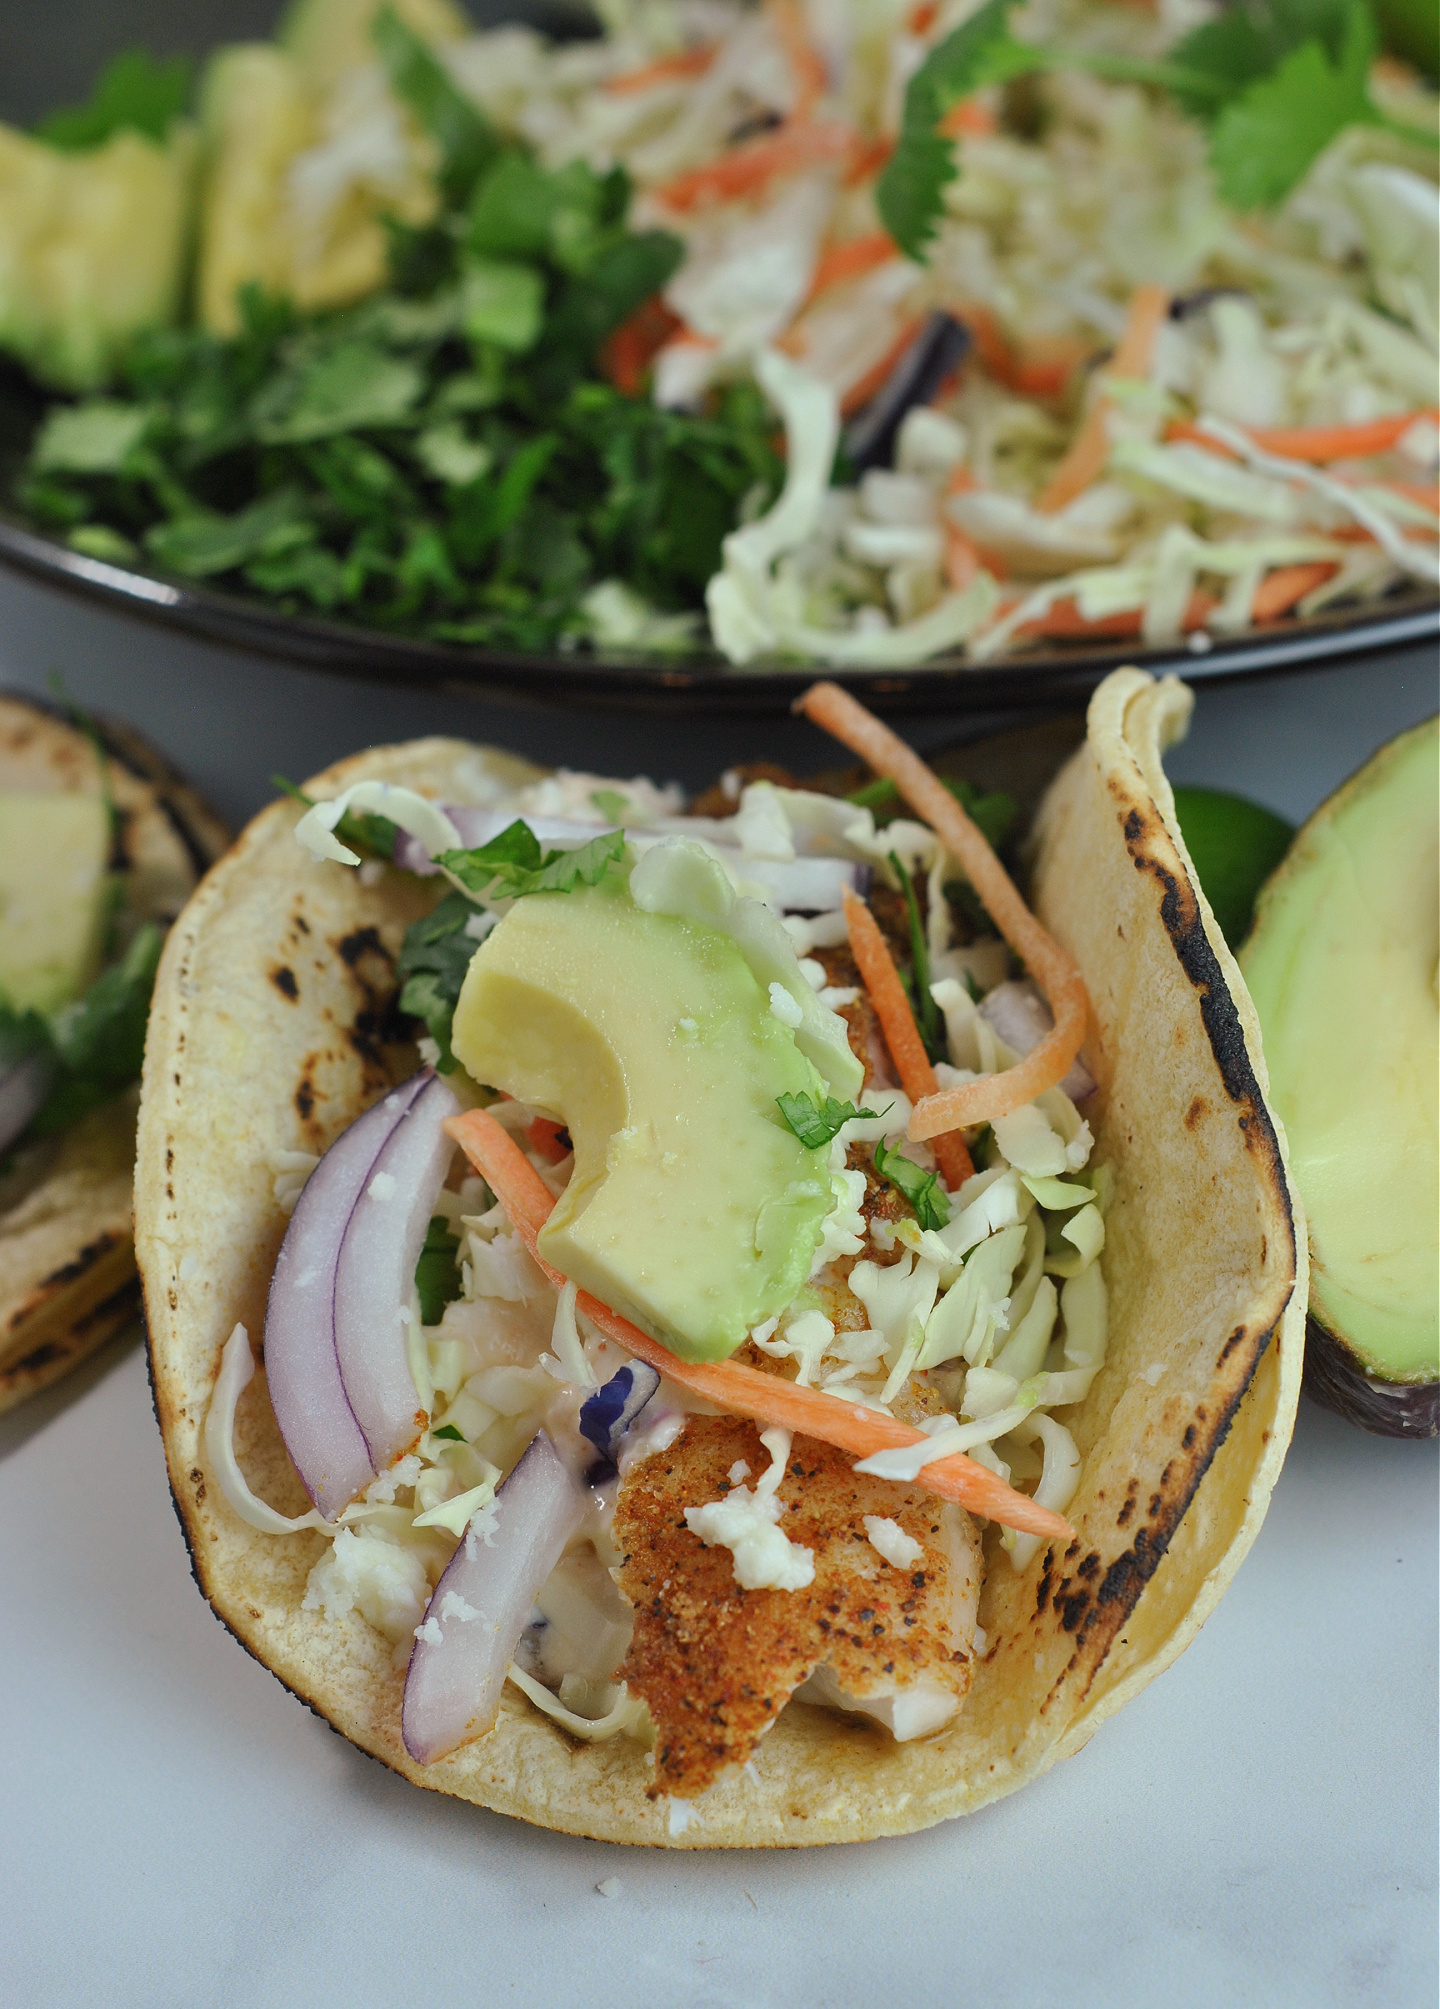 Spicy Tilapia Tacos with Sriracha Mayo via @preventionrd